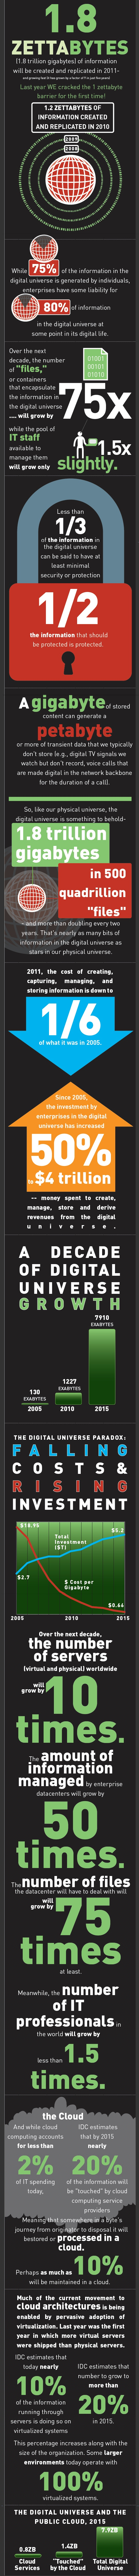 Digital Universe by IDC and sponsored by EMC